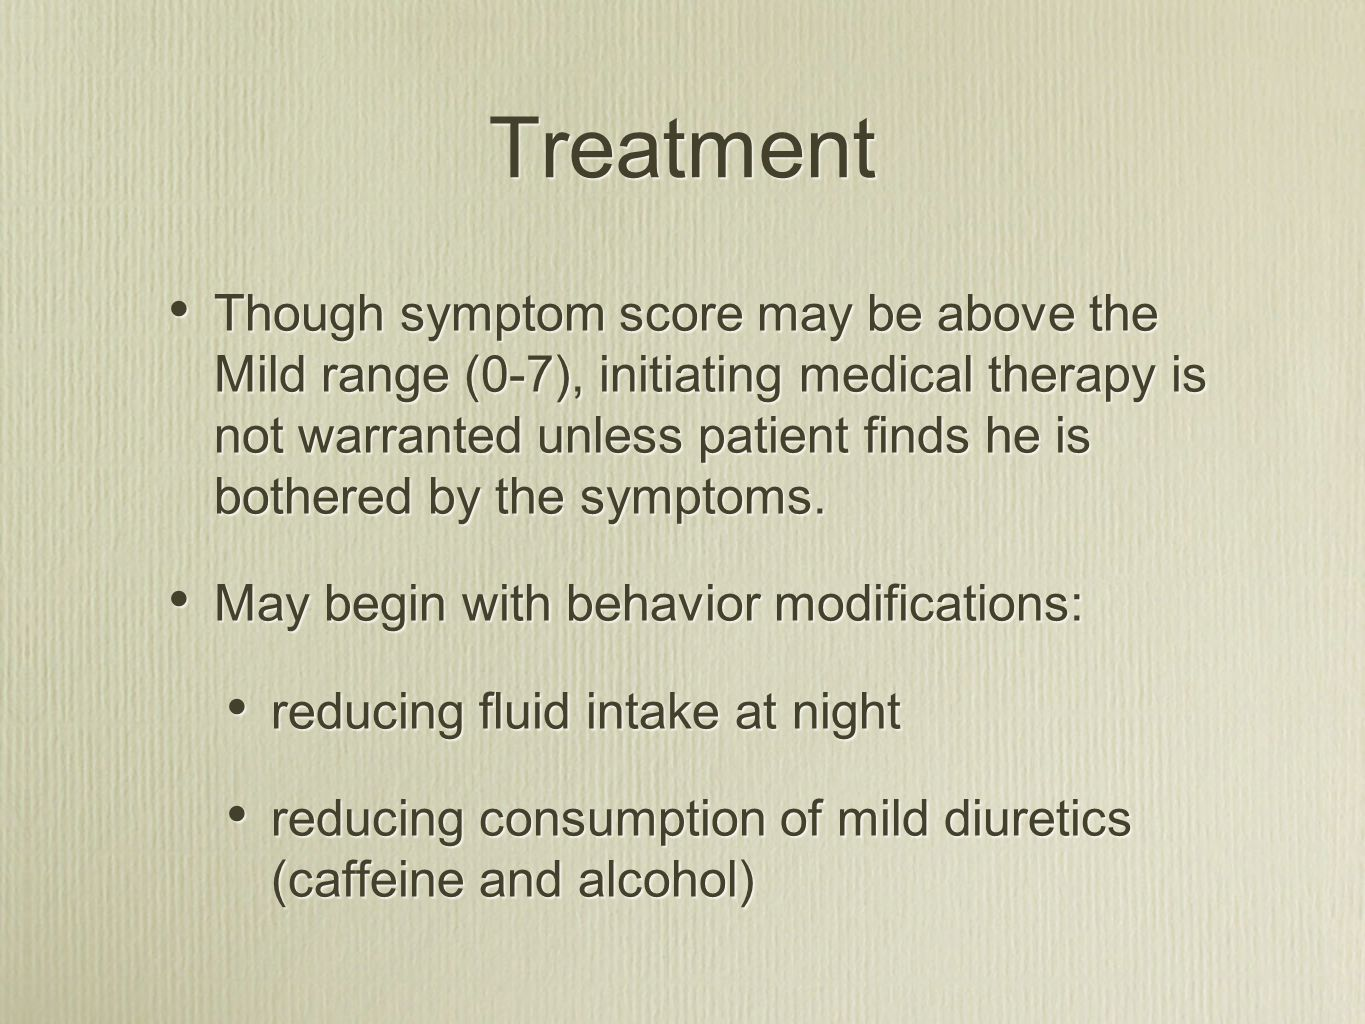 Treatment Though symptom score may be above the Mild range (0-7), initiating medical therapy is not warranted unless patient finds he is bothered by t